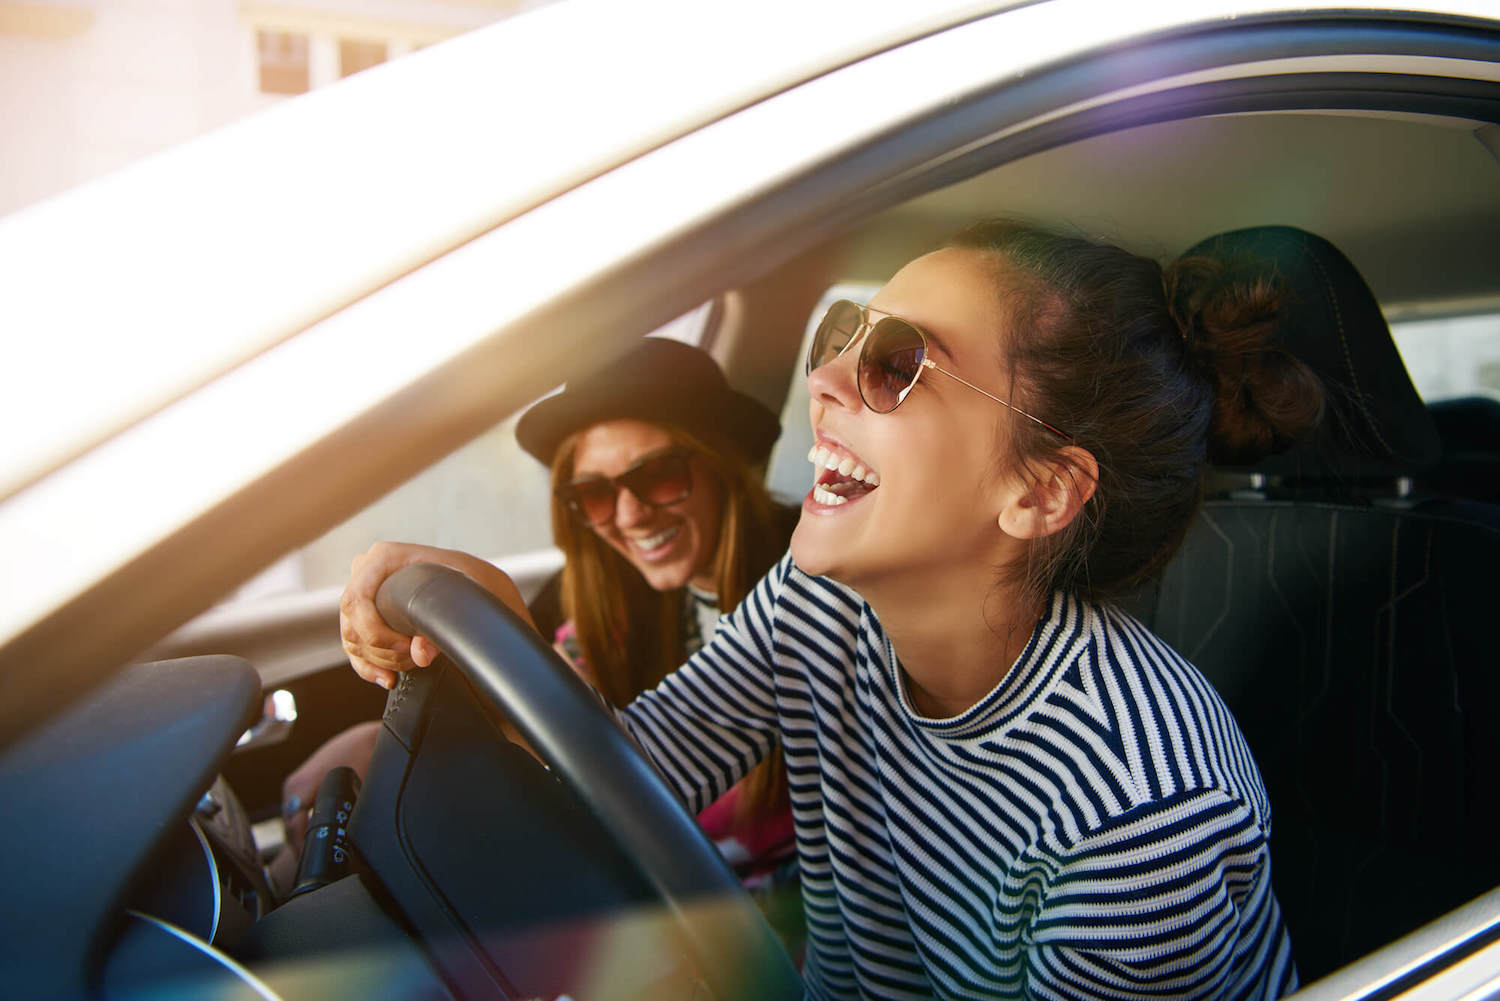 Two girls laughing in a car